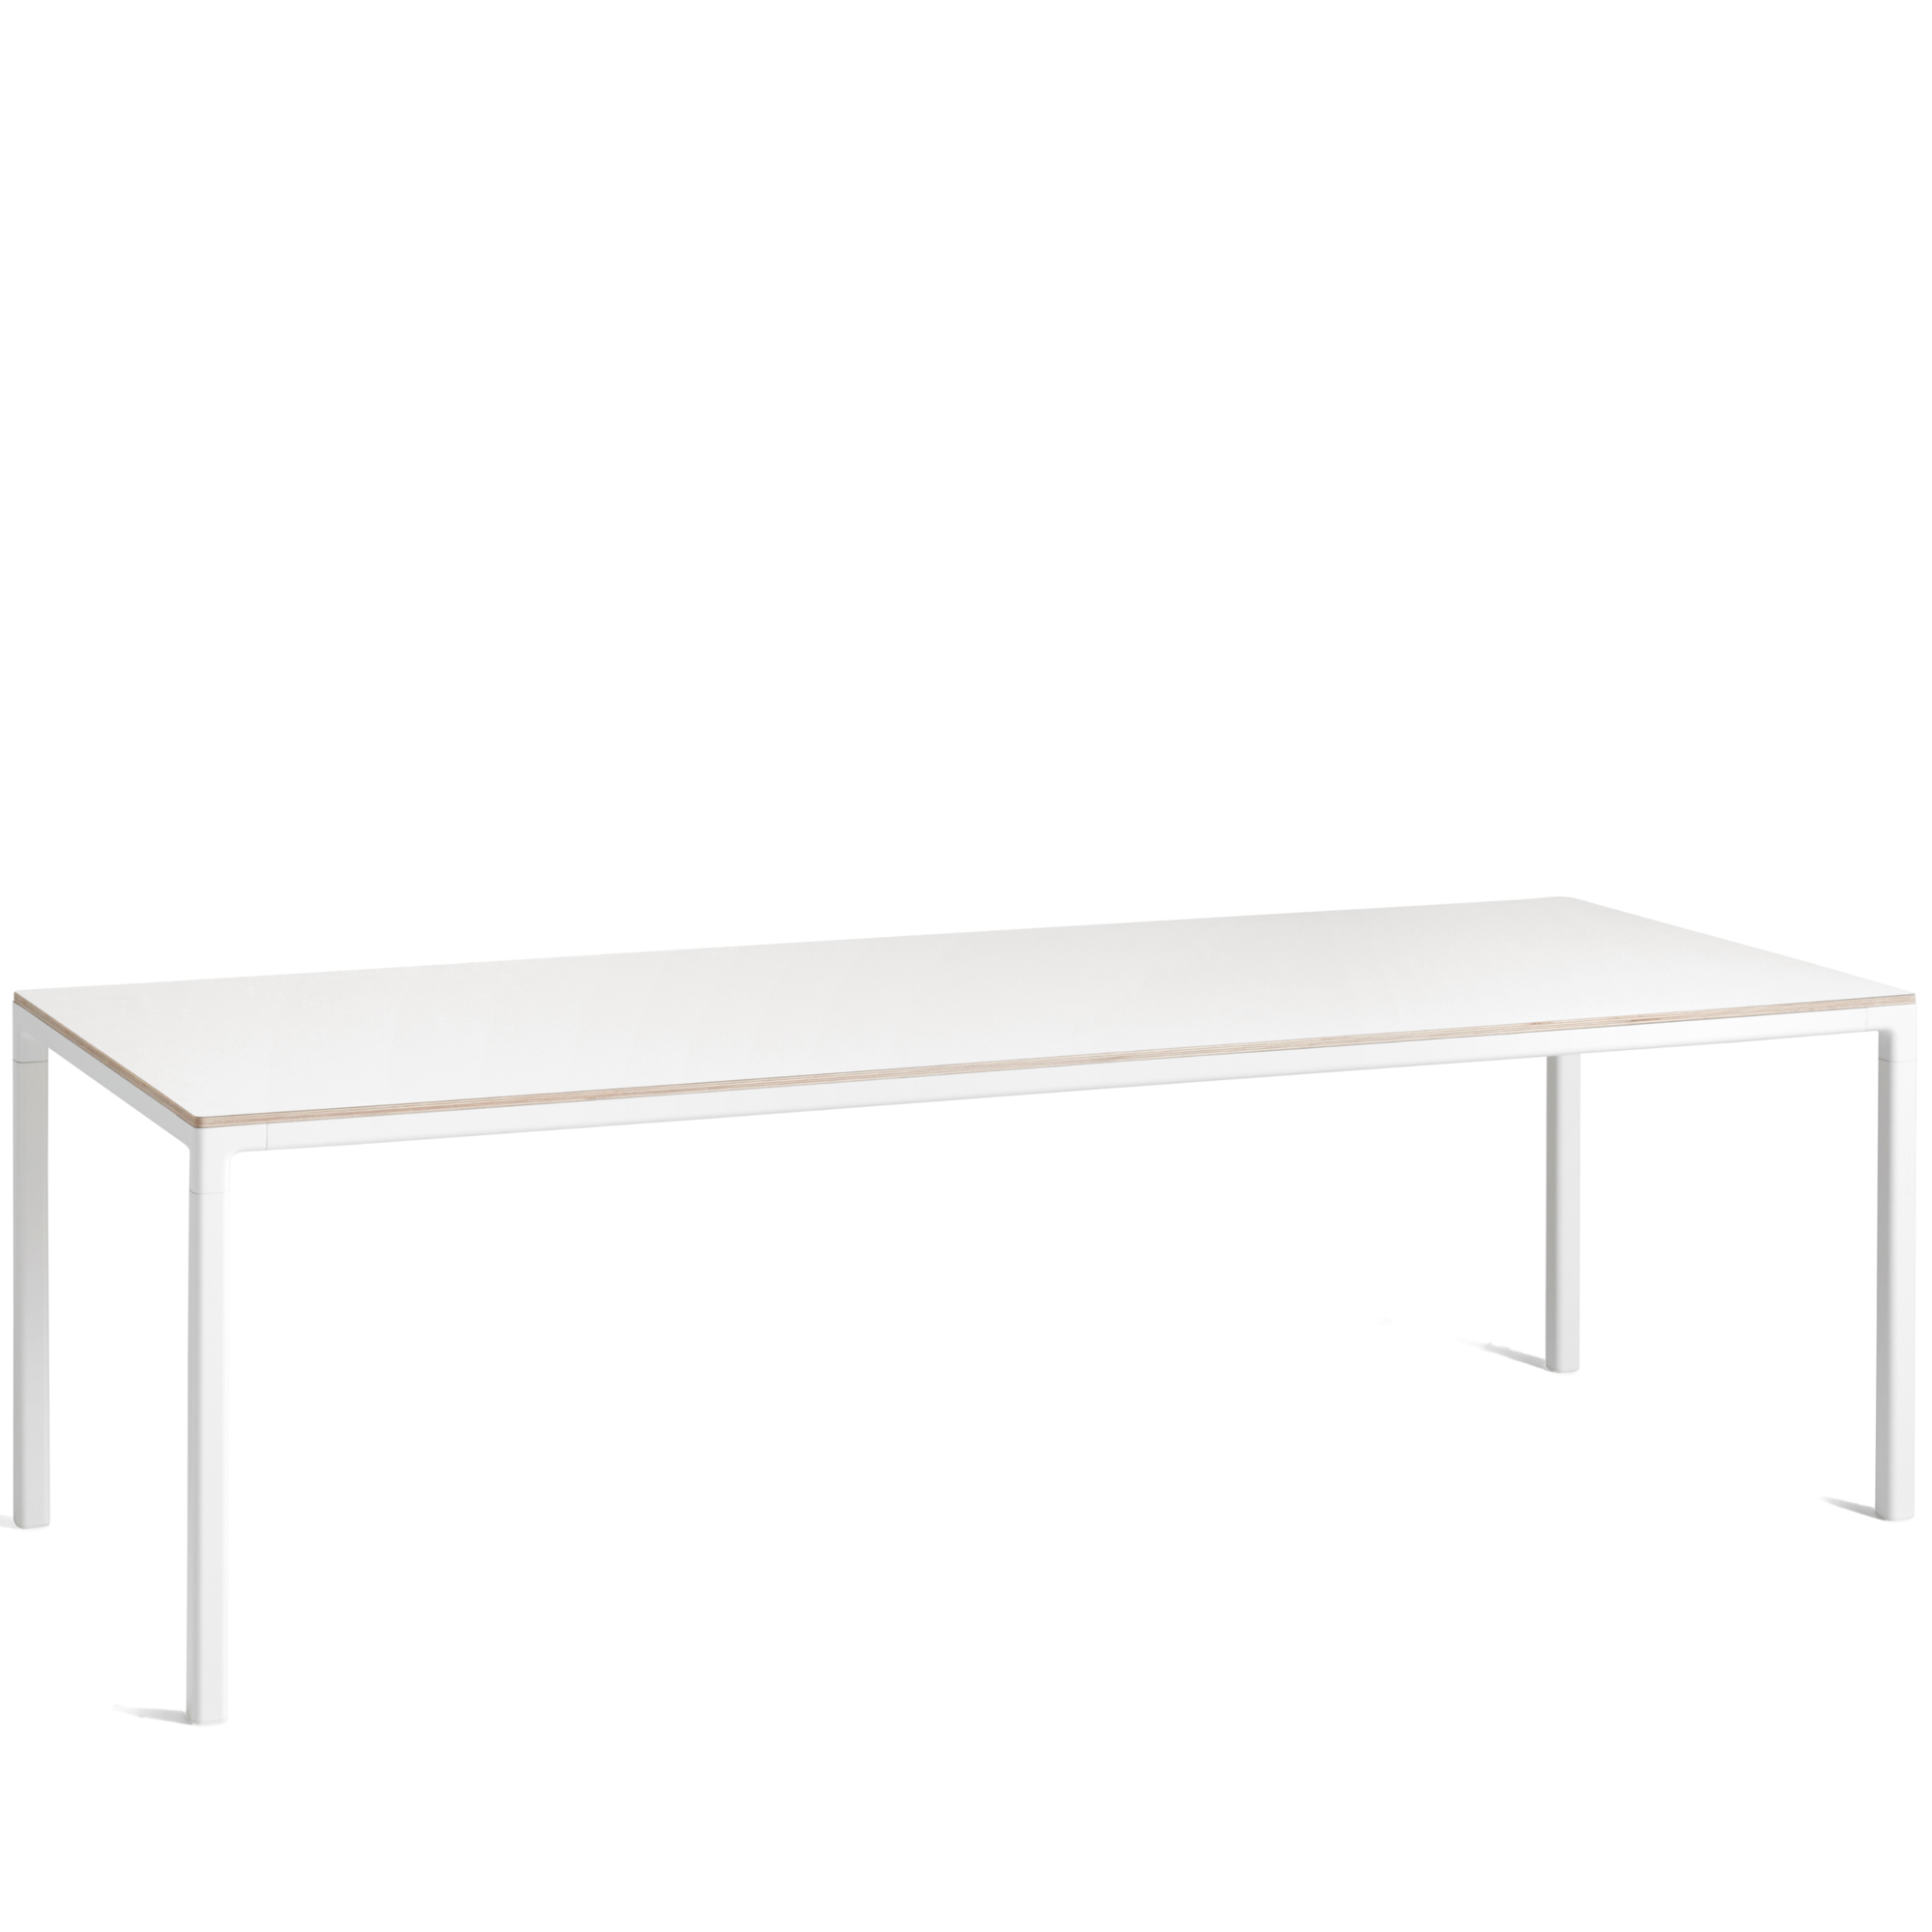 HAY Office T12 Desk 2500mm - White